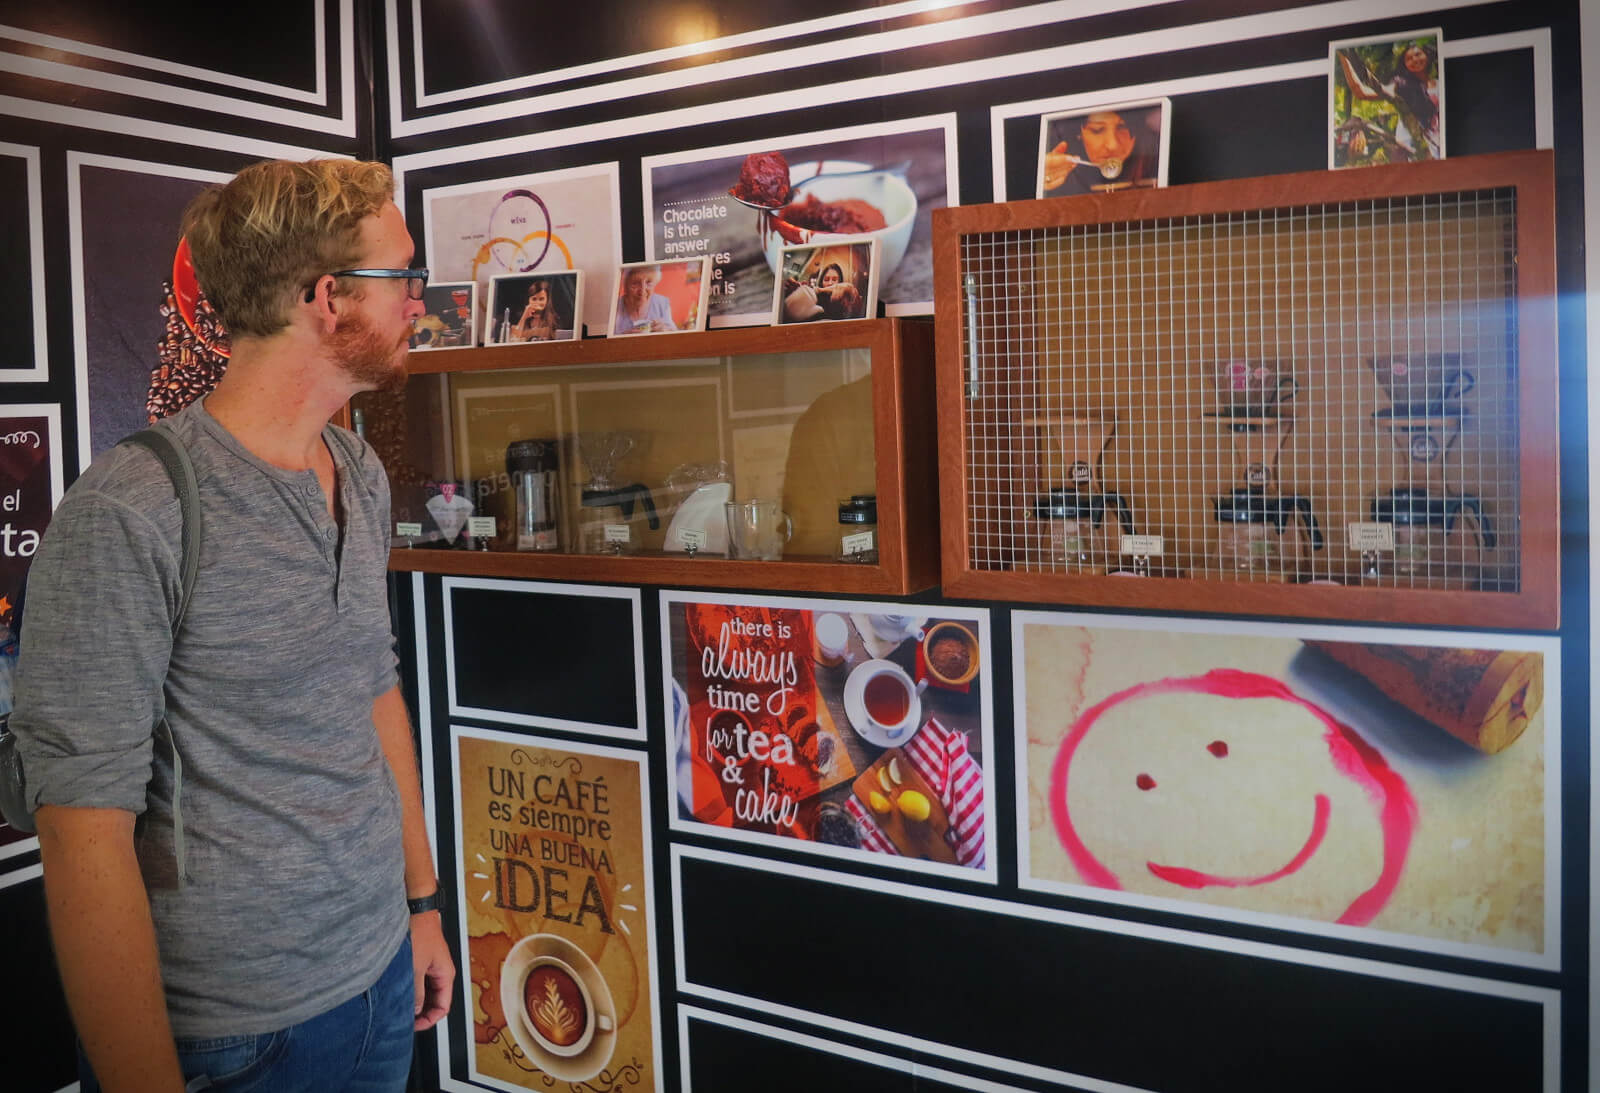 Admiring the display room in Cate Tasting Room, a third wave coffee shop in Lima, Peru.